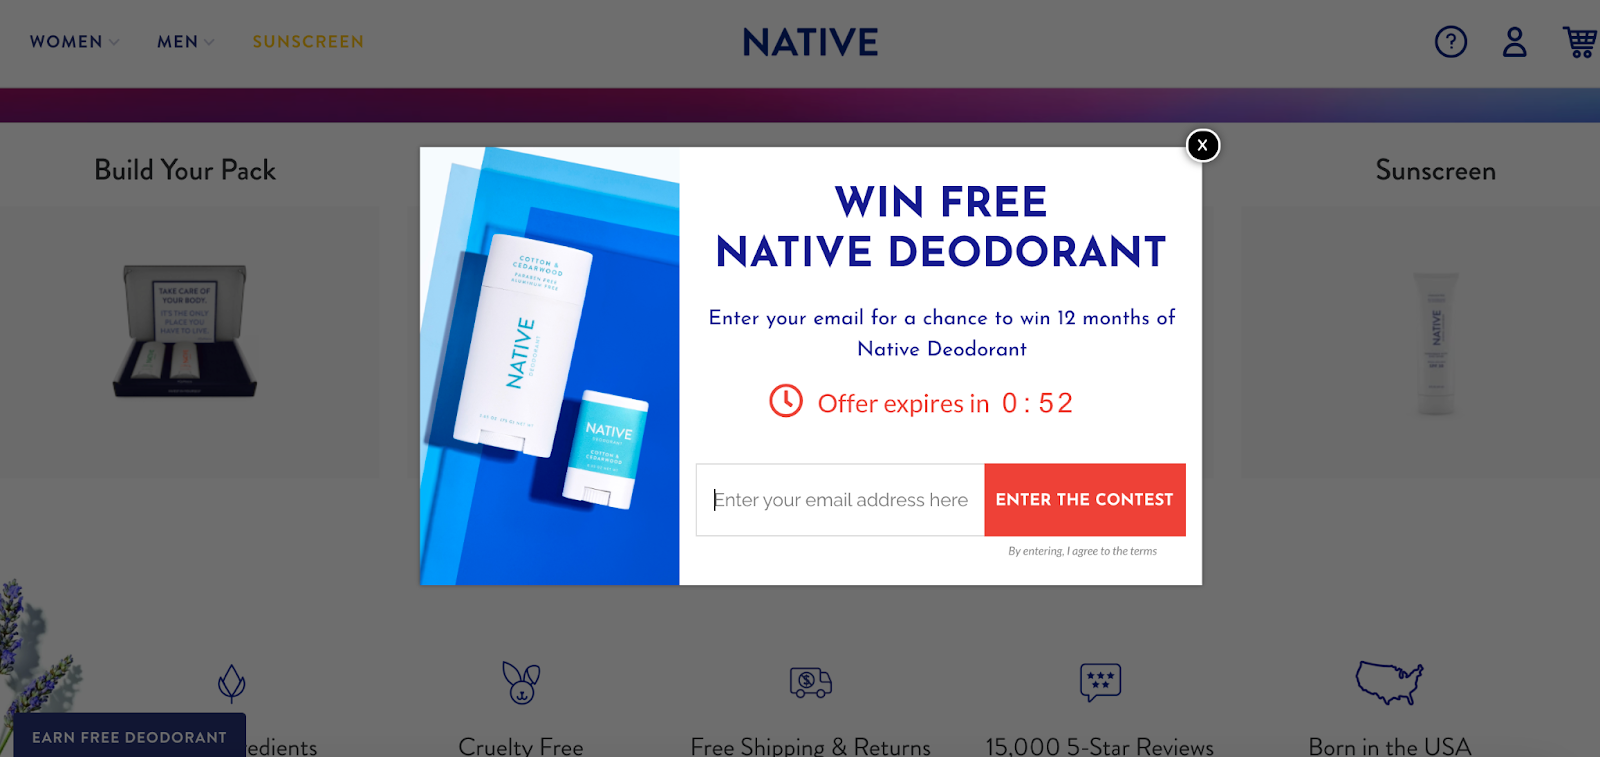 Win 12 months of Native Deodorant.